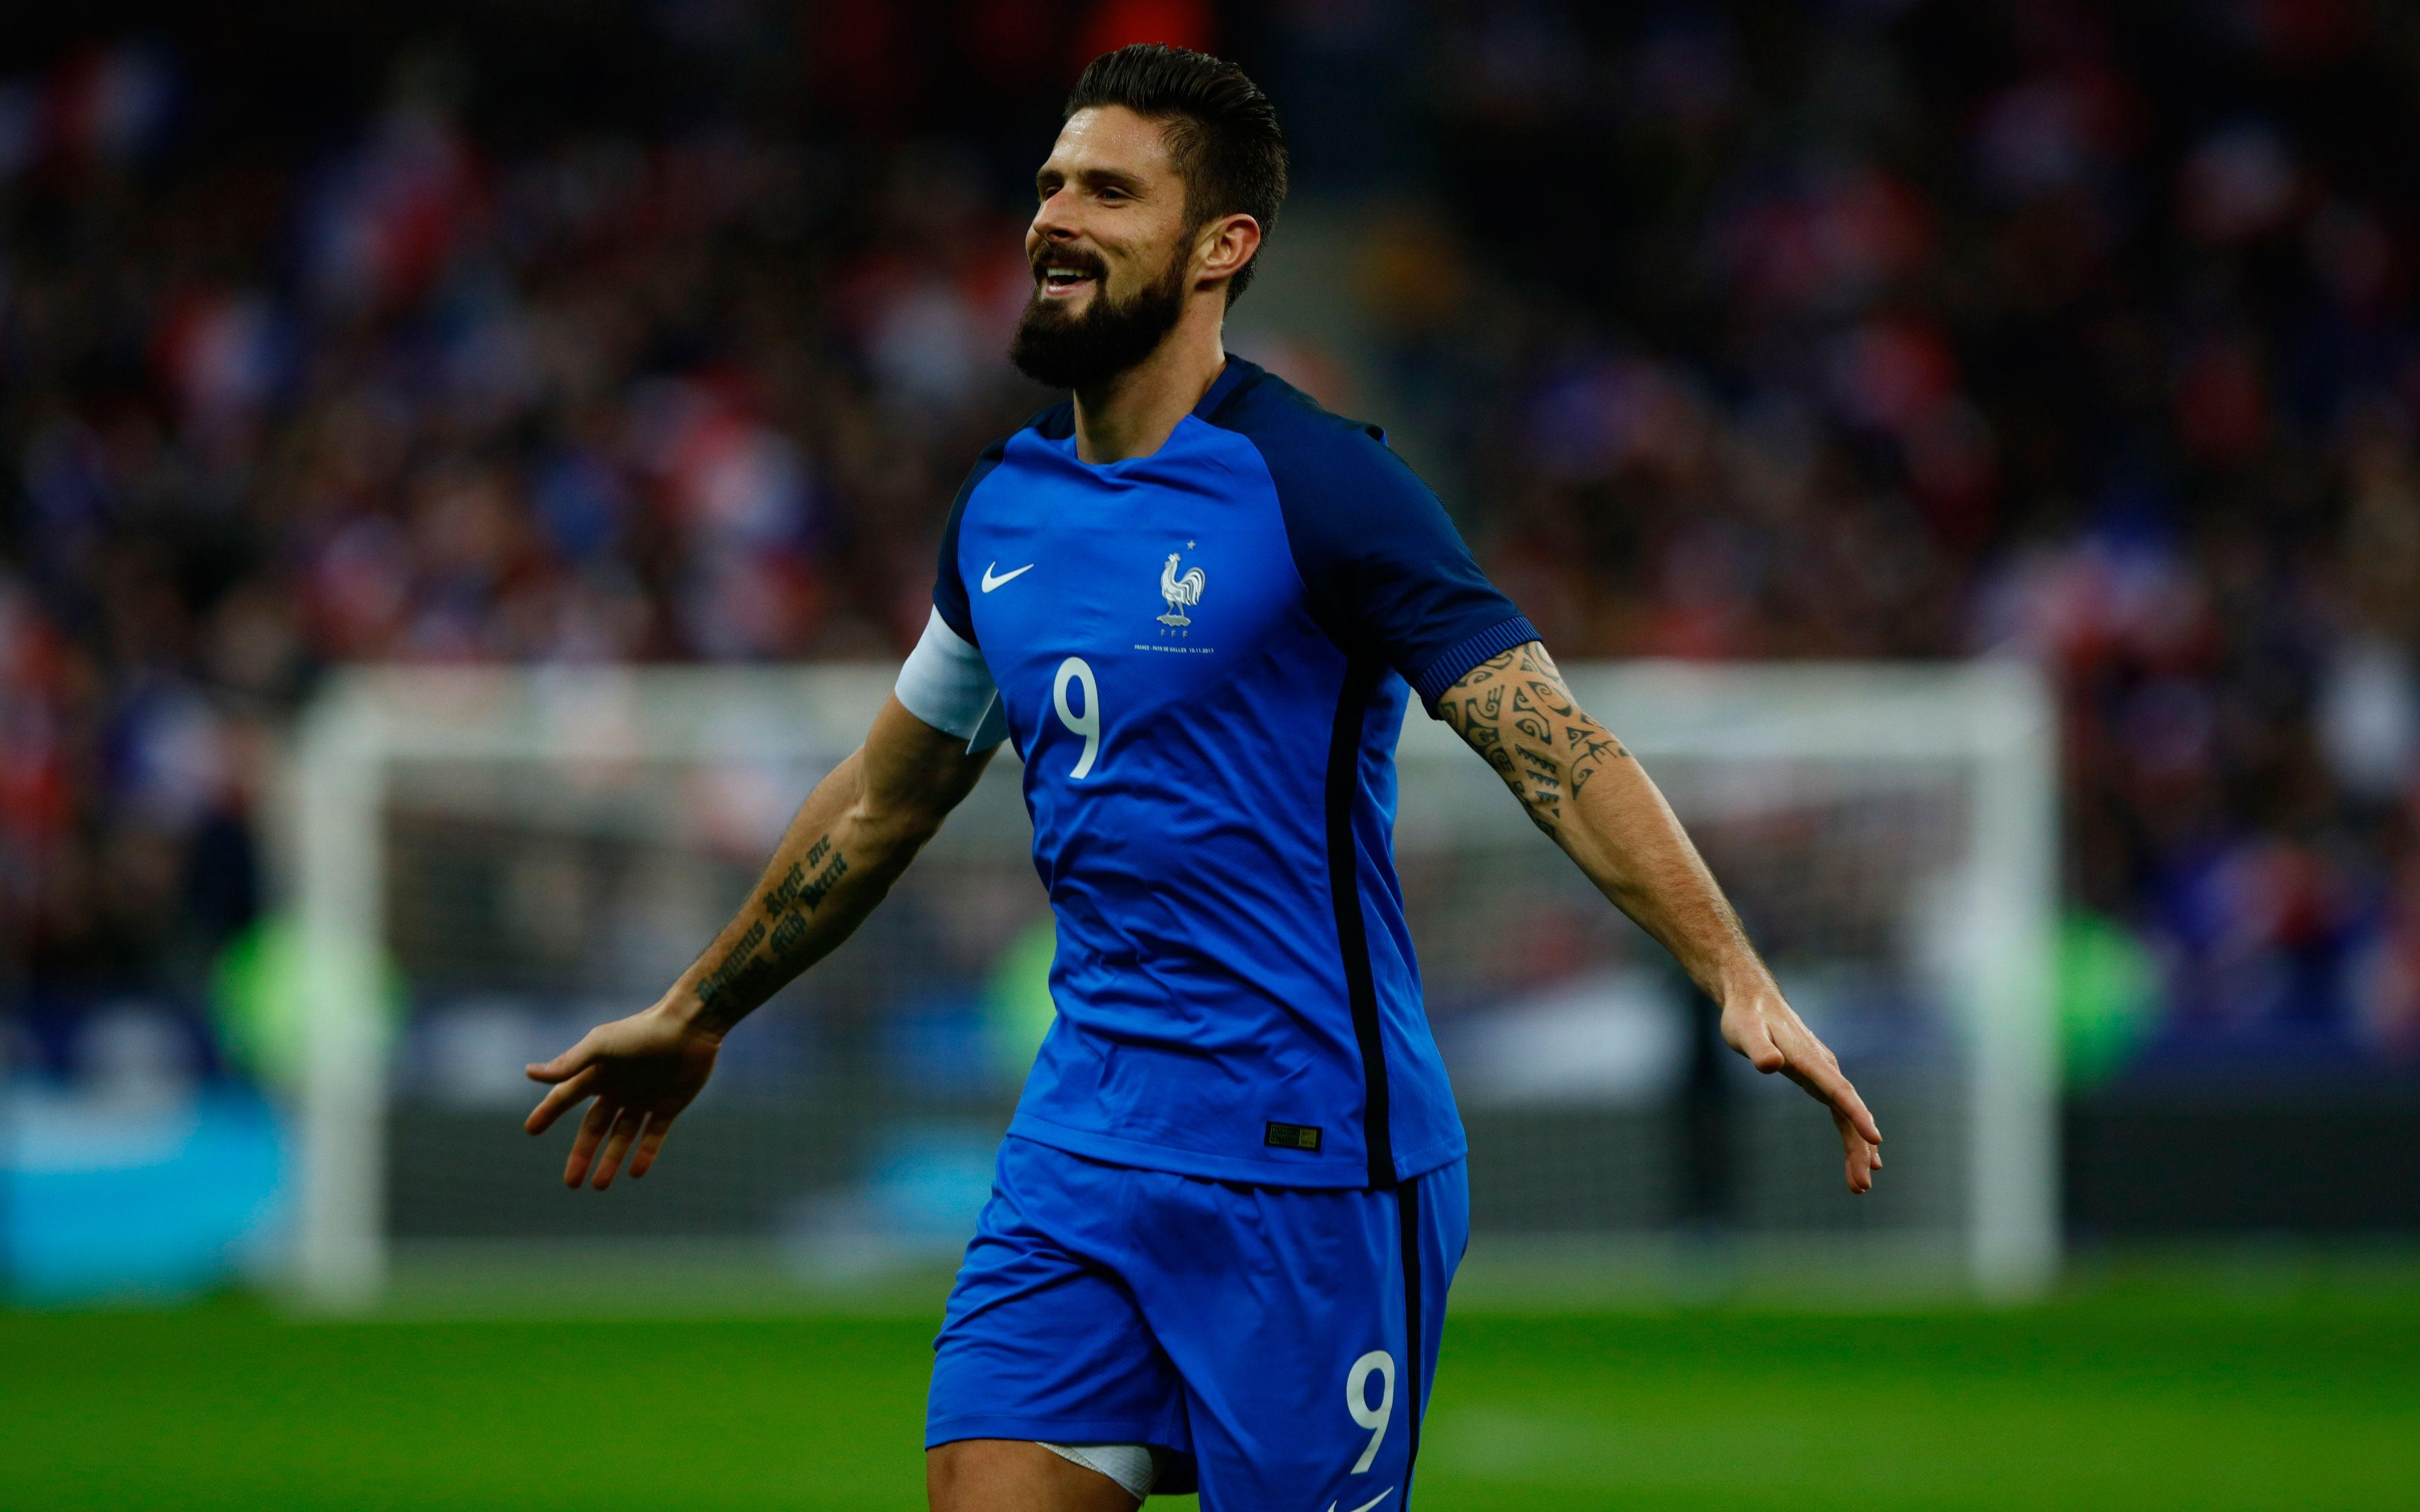 Olivier Giroud France Wallpapers - Wallpaper Cave